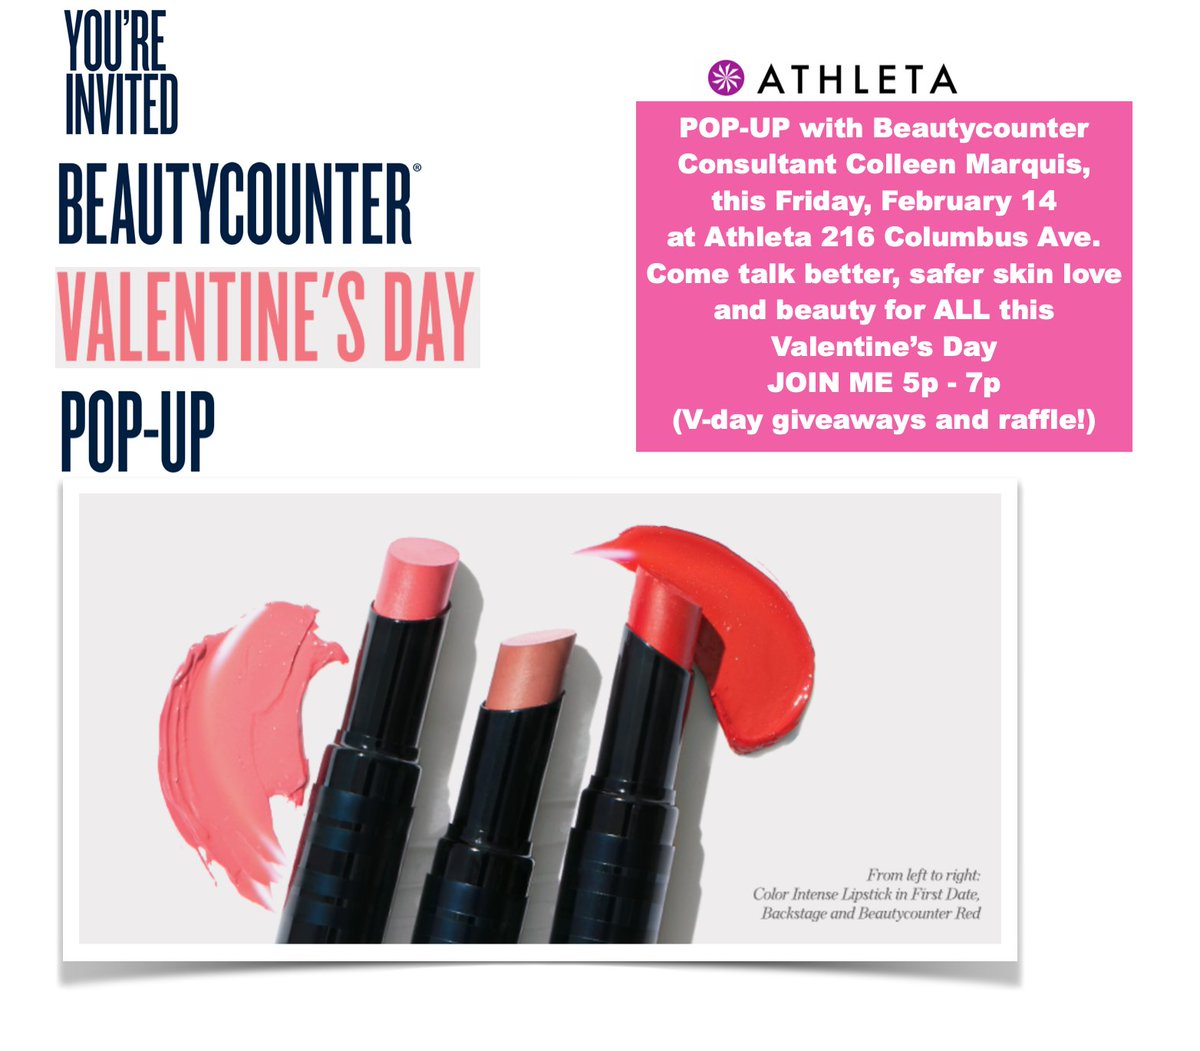 #NYC #VDAY #galentines #BeMyValentine #SelfLove #BetterBeauty #cleanbeauty  #nontoxicbeauty  @beautycounterhq  #PopUp  @Athleta  #chocolate #UWS #wouldyoubemine  #countertime #counterman  Treat yourself to some nice #yogaclothes and #Beautycounter http://beautycounter.com/colleenmarquispic.twitter.com/k9hC6mKIC3